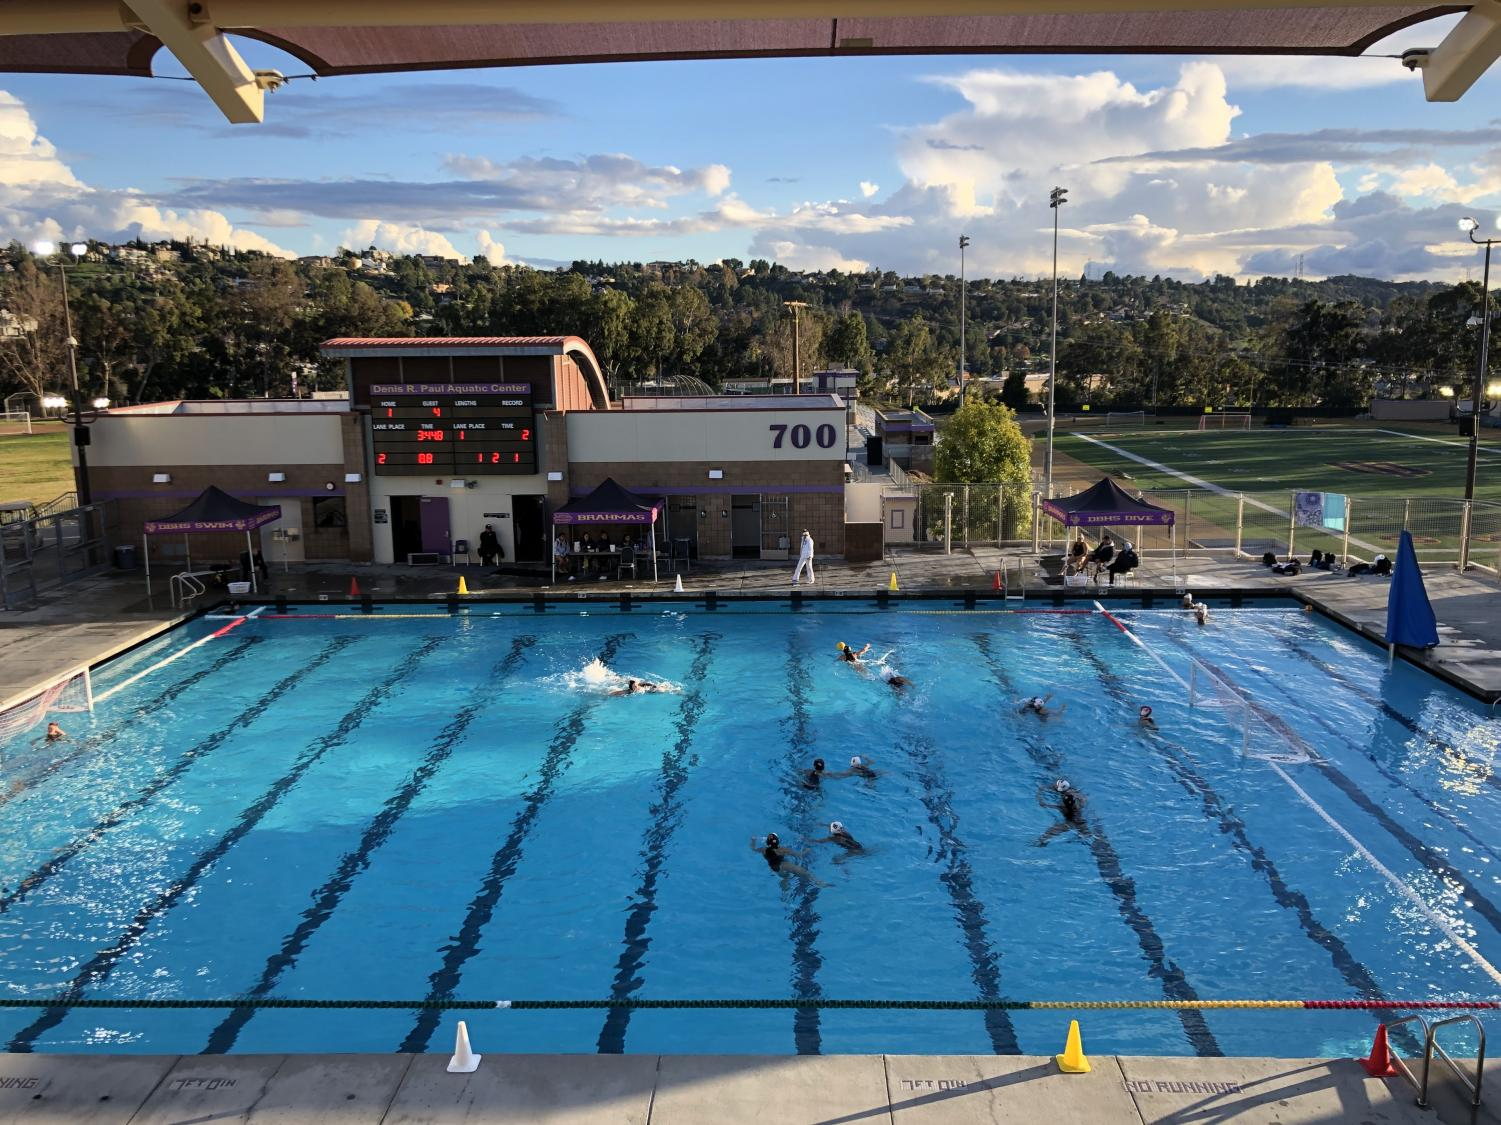 On Saturday, January 12th, VWS water polo competed at Diamond Bar High School for the second half of the 5th annual Lady Brahmas Winter Classic.